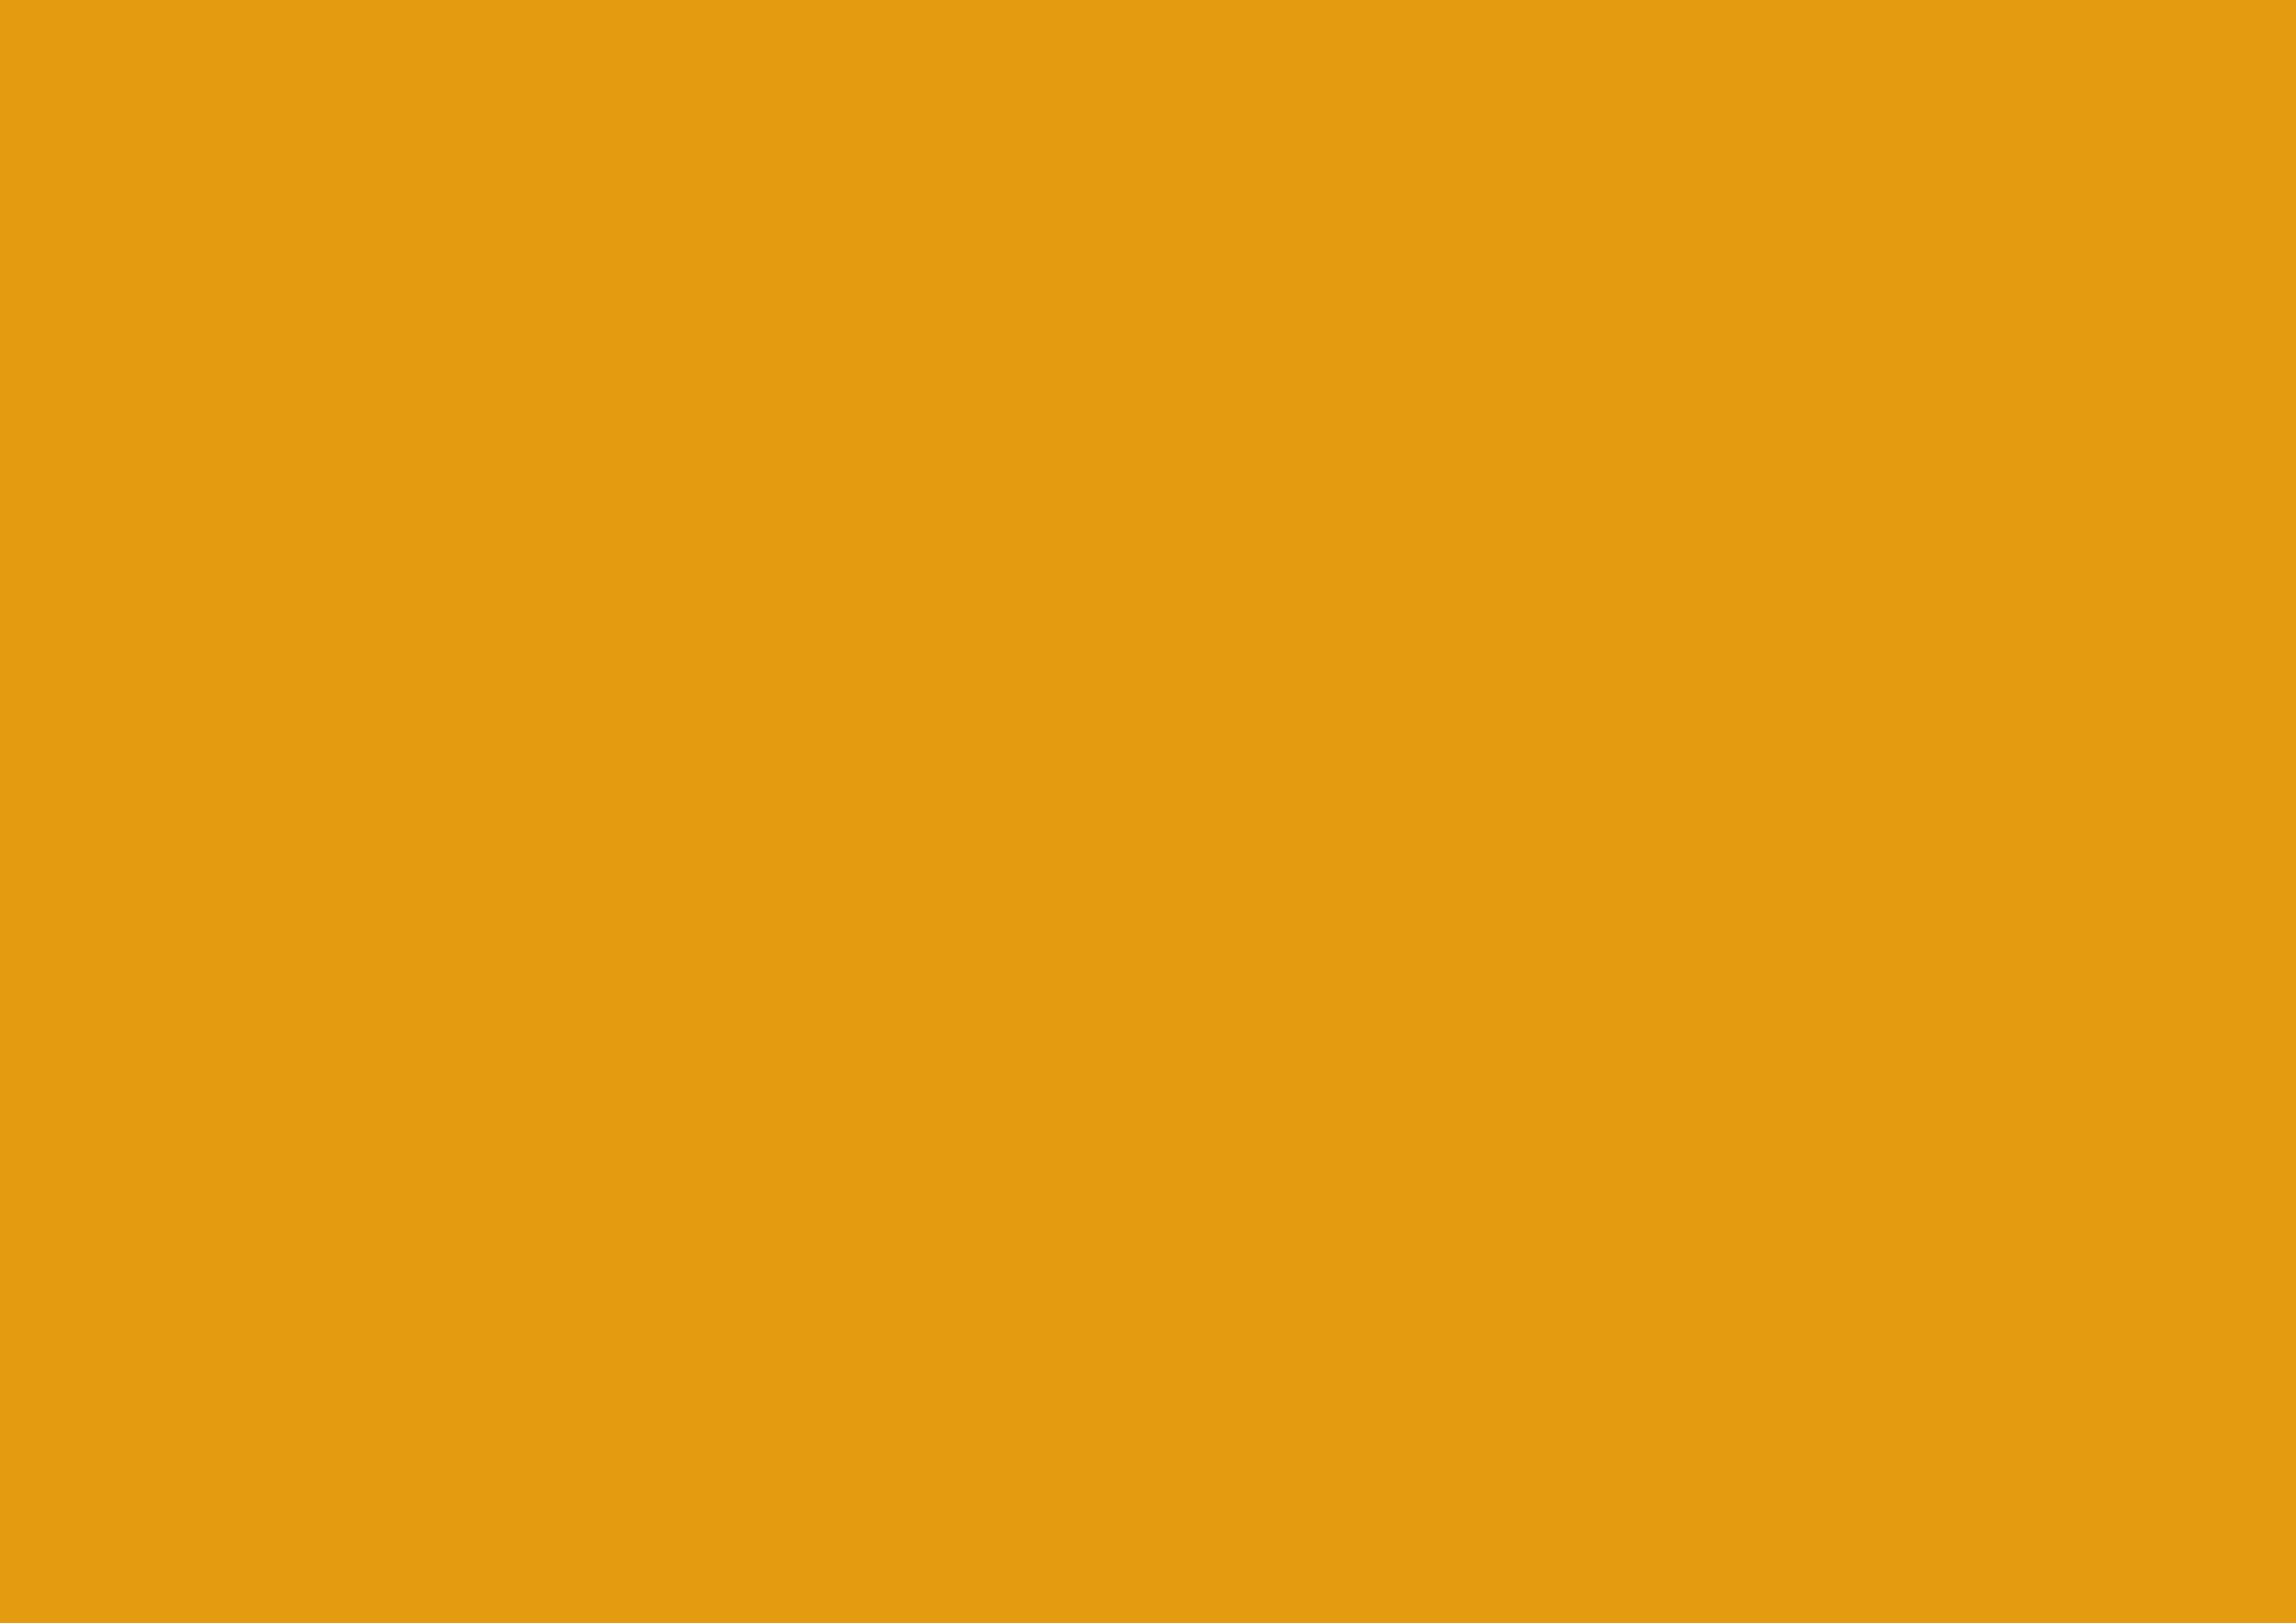 3508x2480 Gamboge Solid Color Background